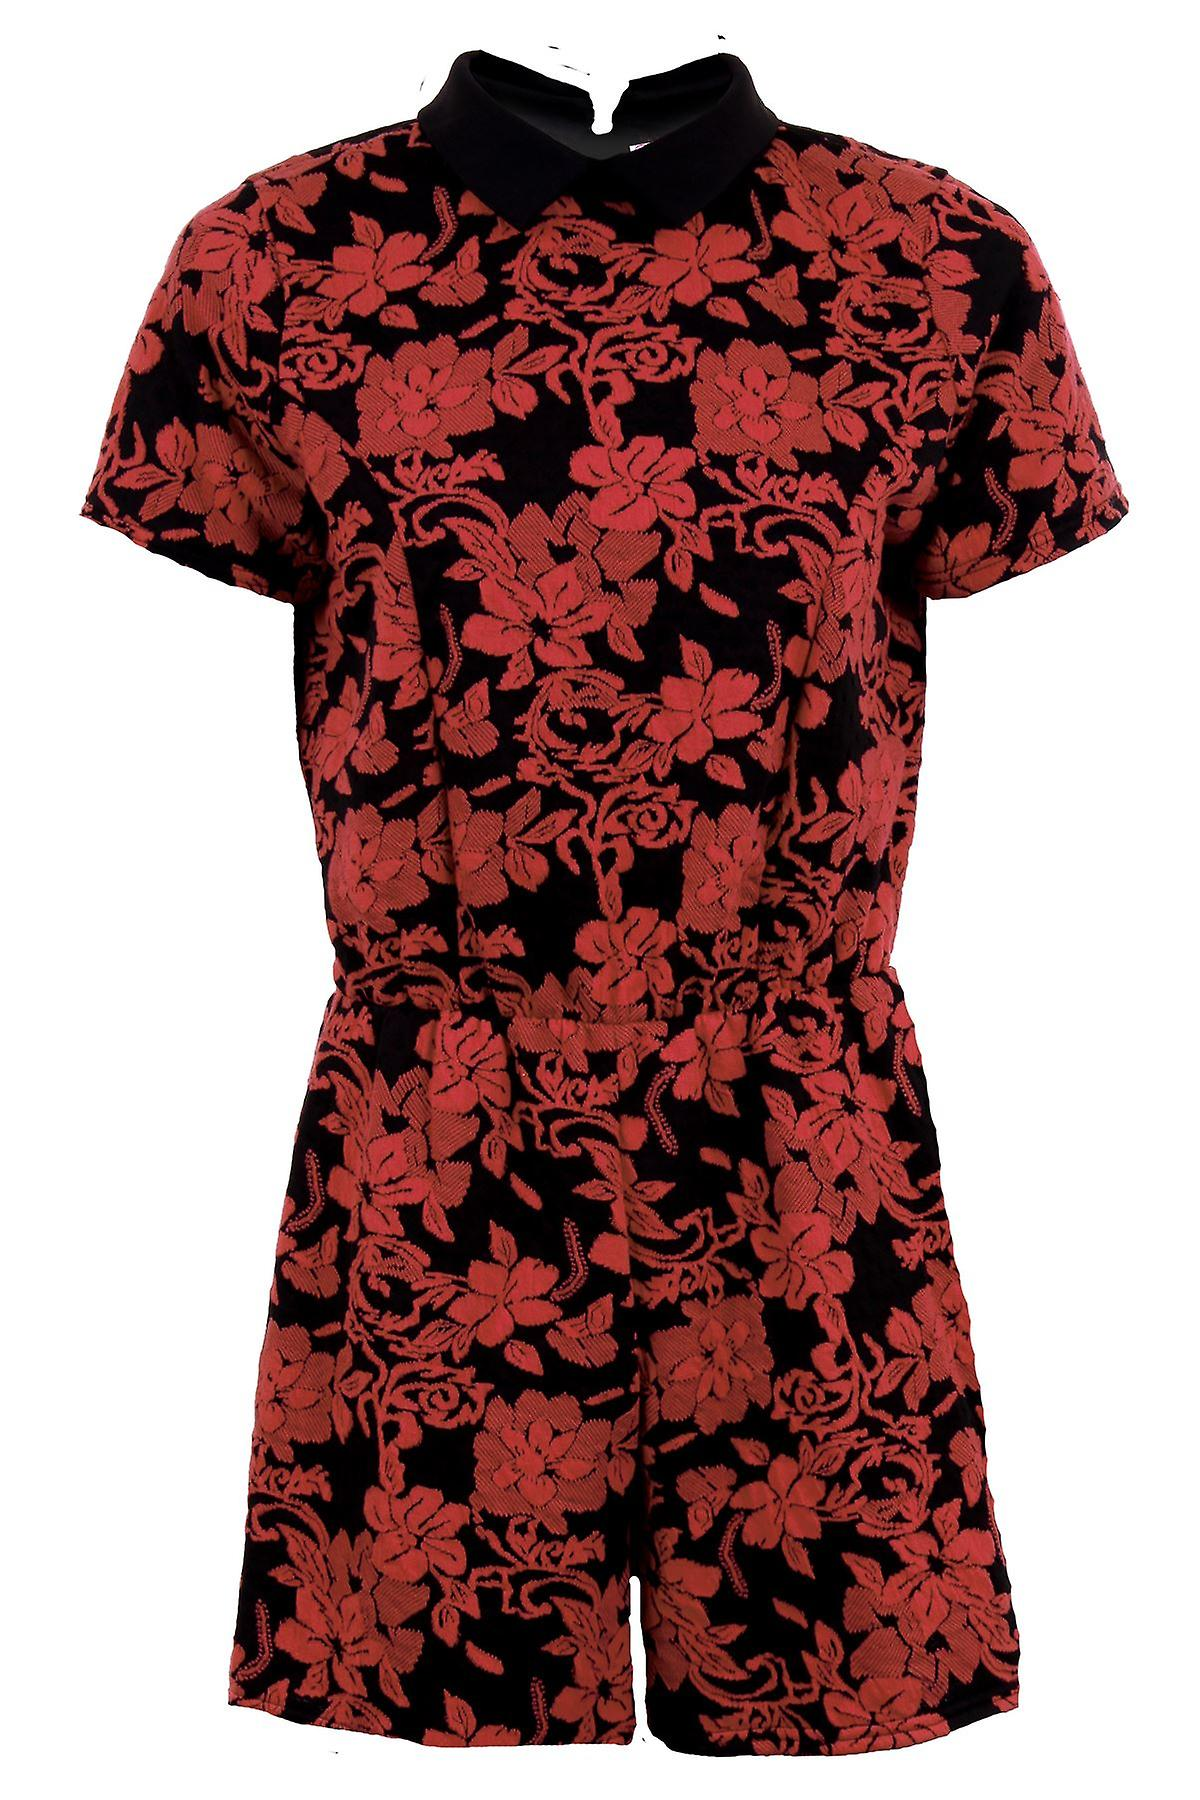 Ladies Short Sleeve Peter Pan Collar Floral Embossed Embroided Women's Playsuit